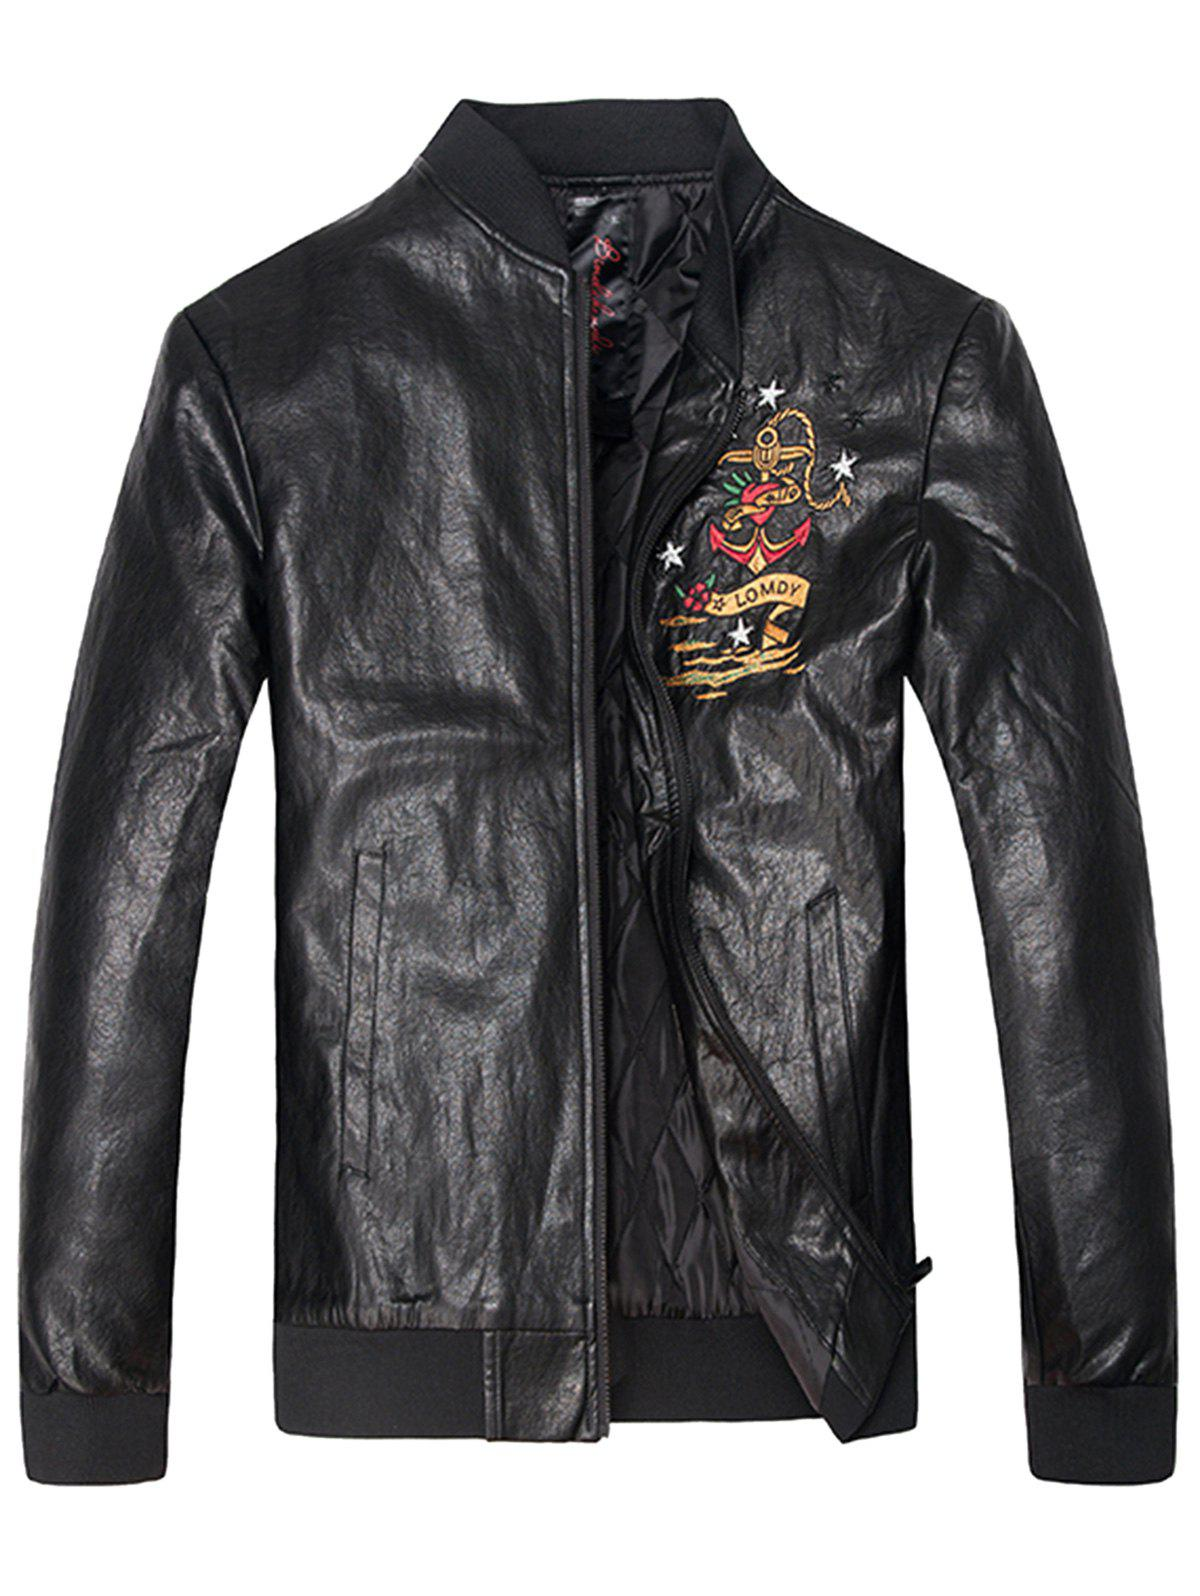 New Embroidered Zip Up PU Leather Jacket